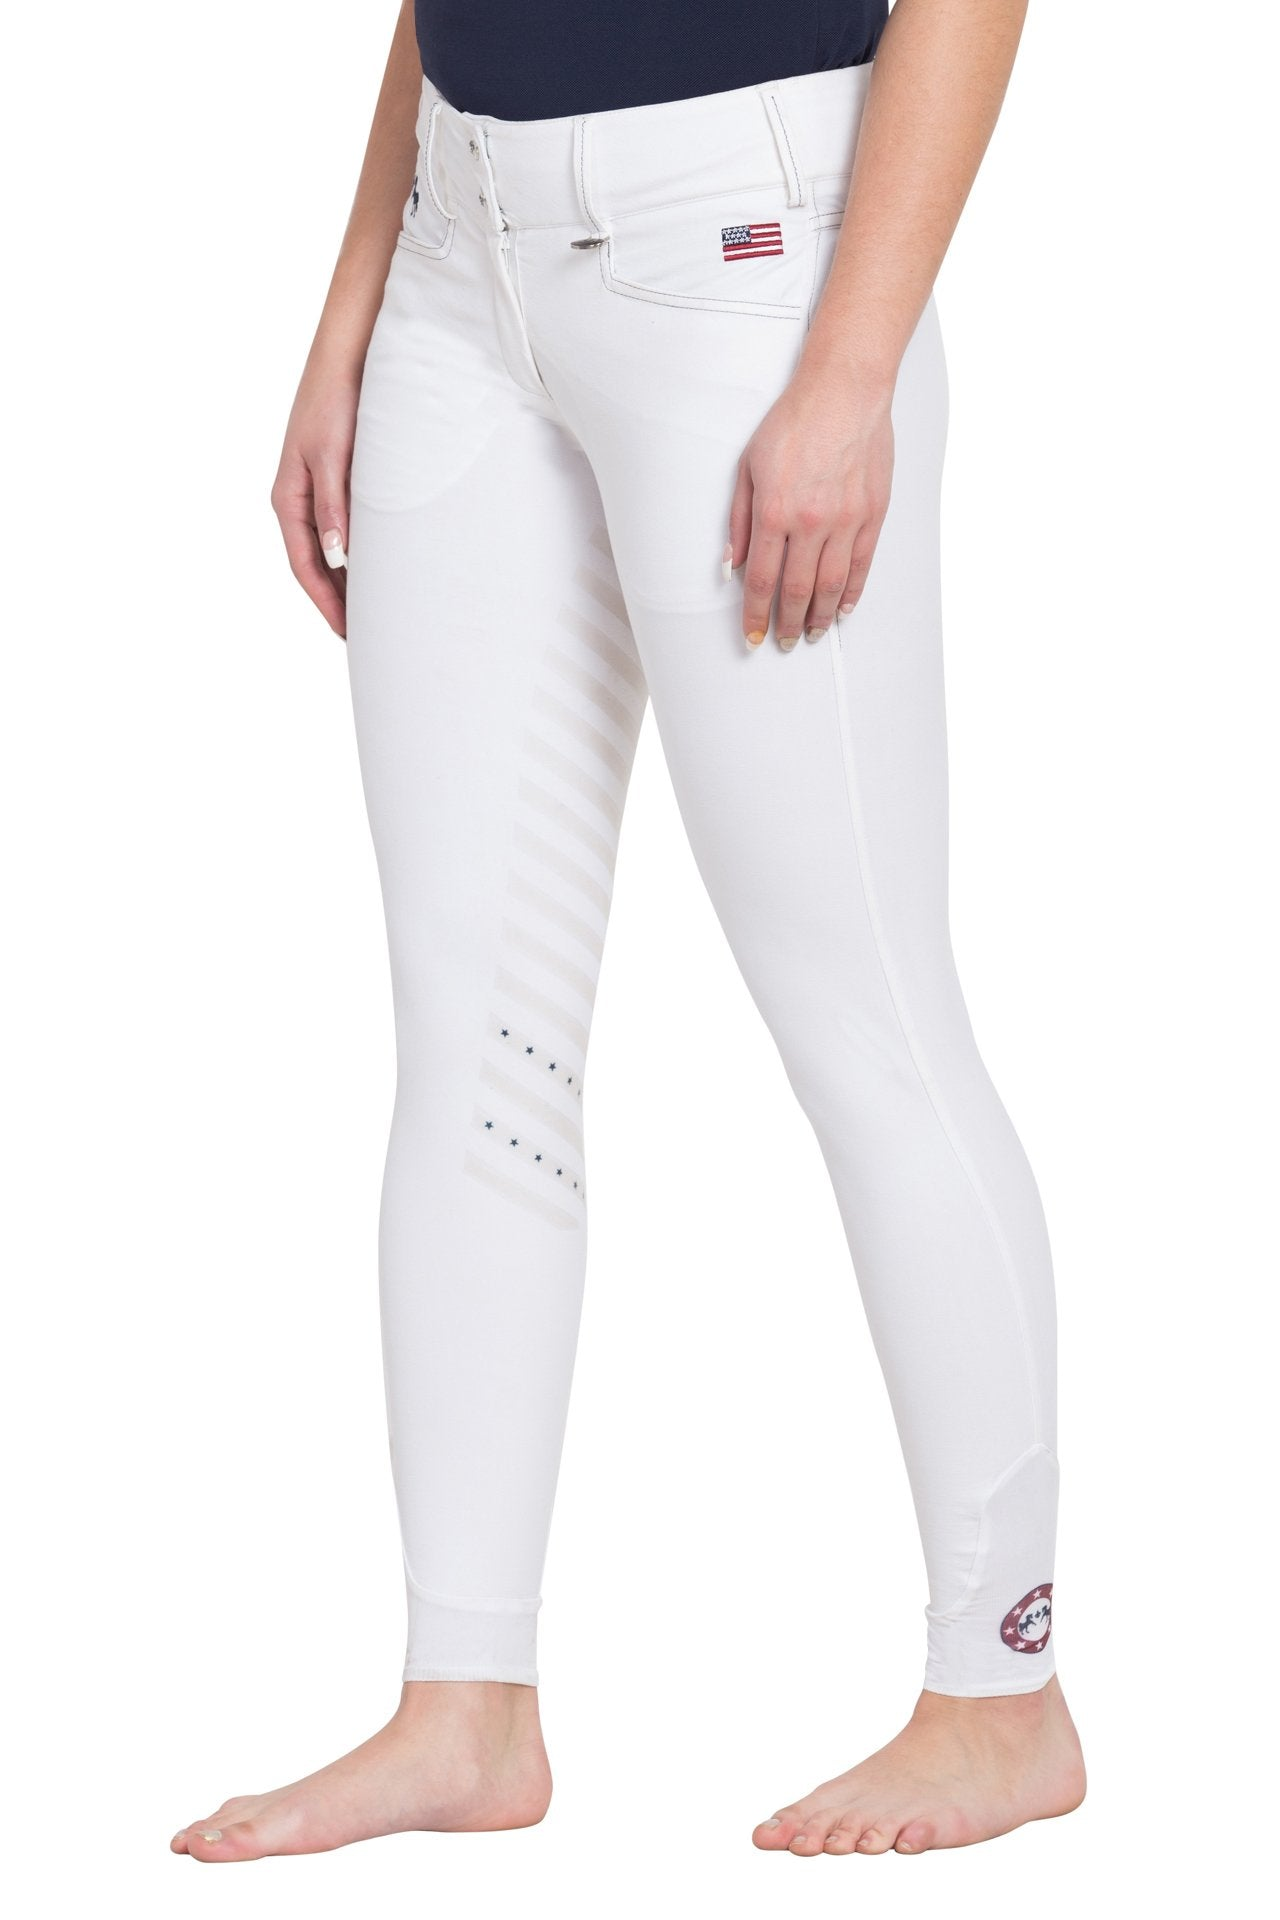 Equine Couture Ladies Bostonian XKP Silicone Extended Knee Patch Breeches_1